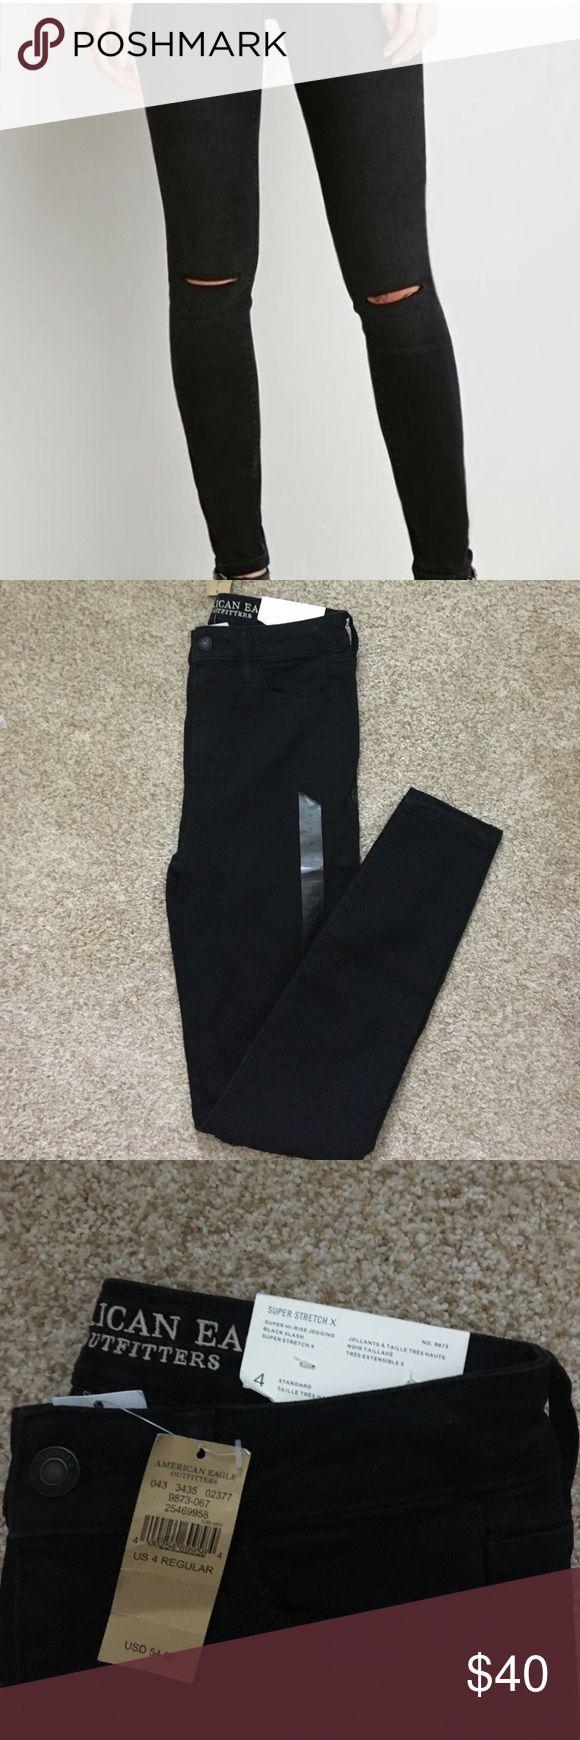 NWT AEO Super High Rise Jeggings AEO's highest rise in black with slits in the knees. They are brand new, I'm only selling because I went back and re bought them with a coupon! They're a comfortable and easy to move in super stretch material! American Eagle Outfitters Jeans Skinny